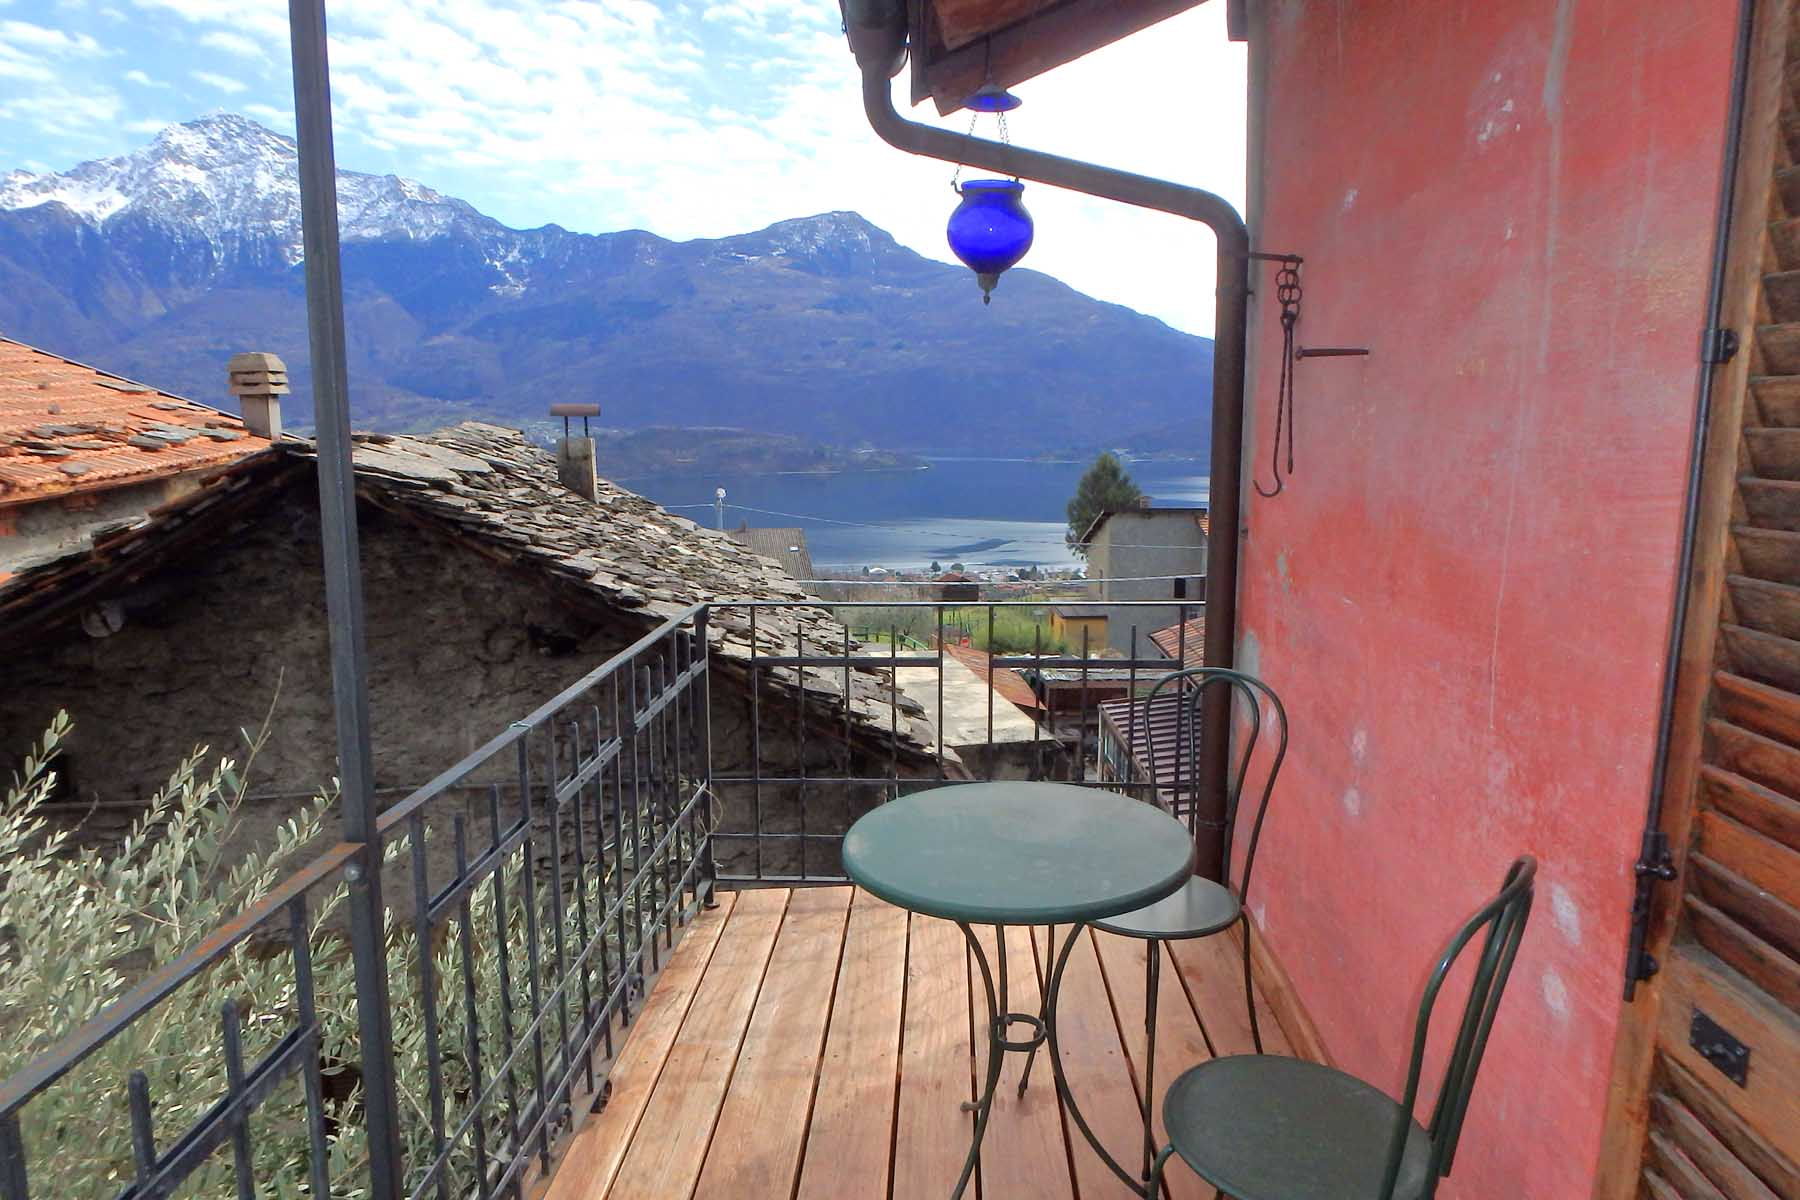 Charming house in Vercana with lake view